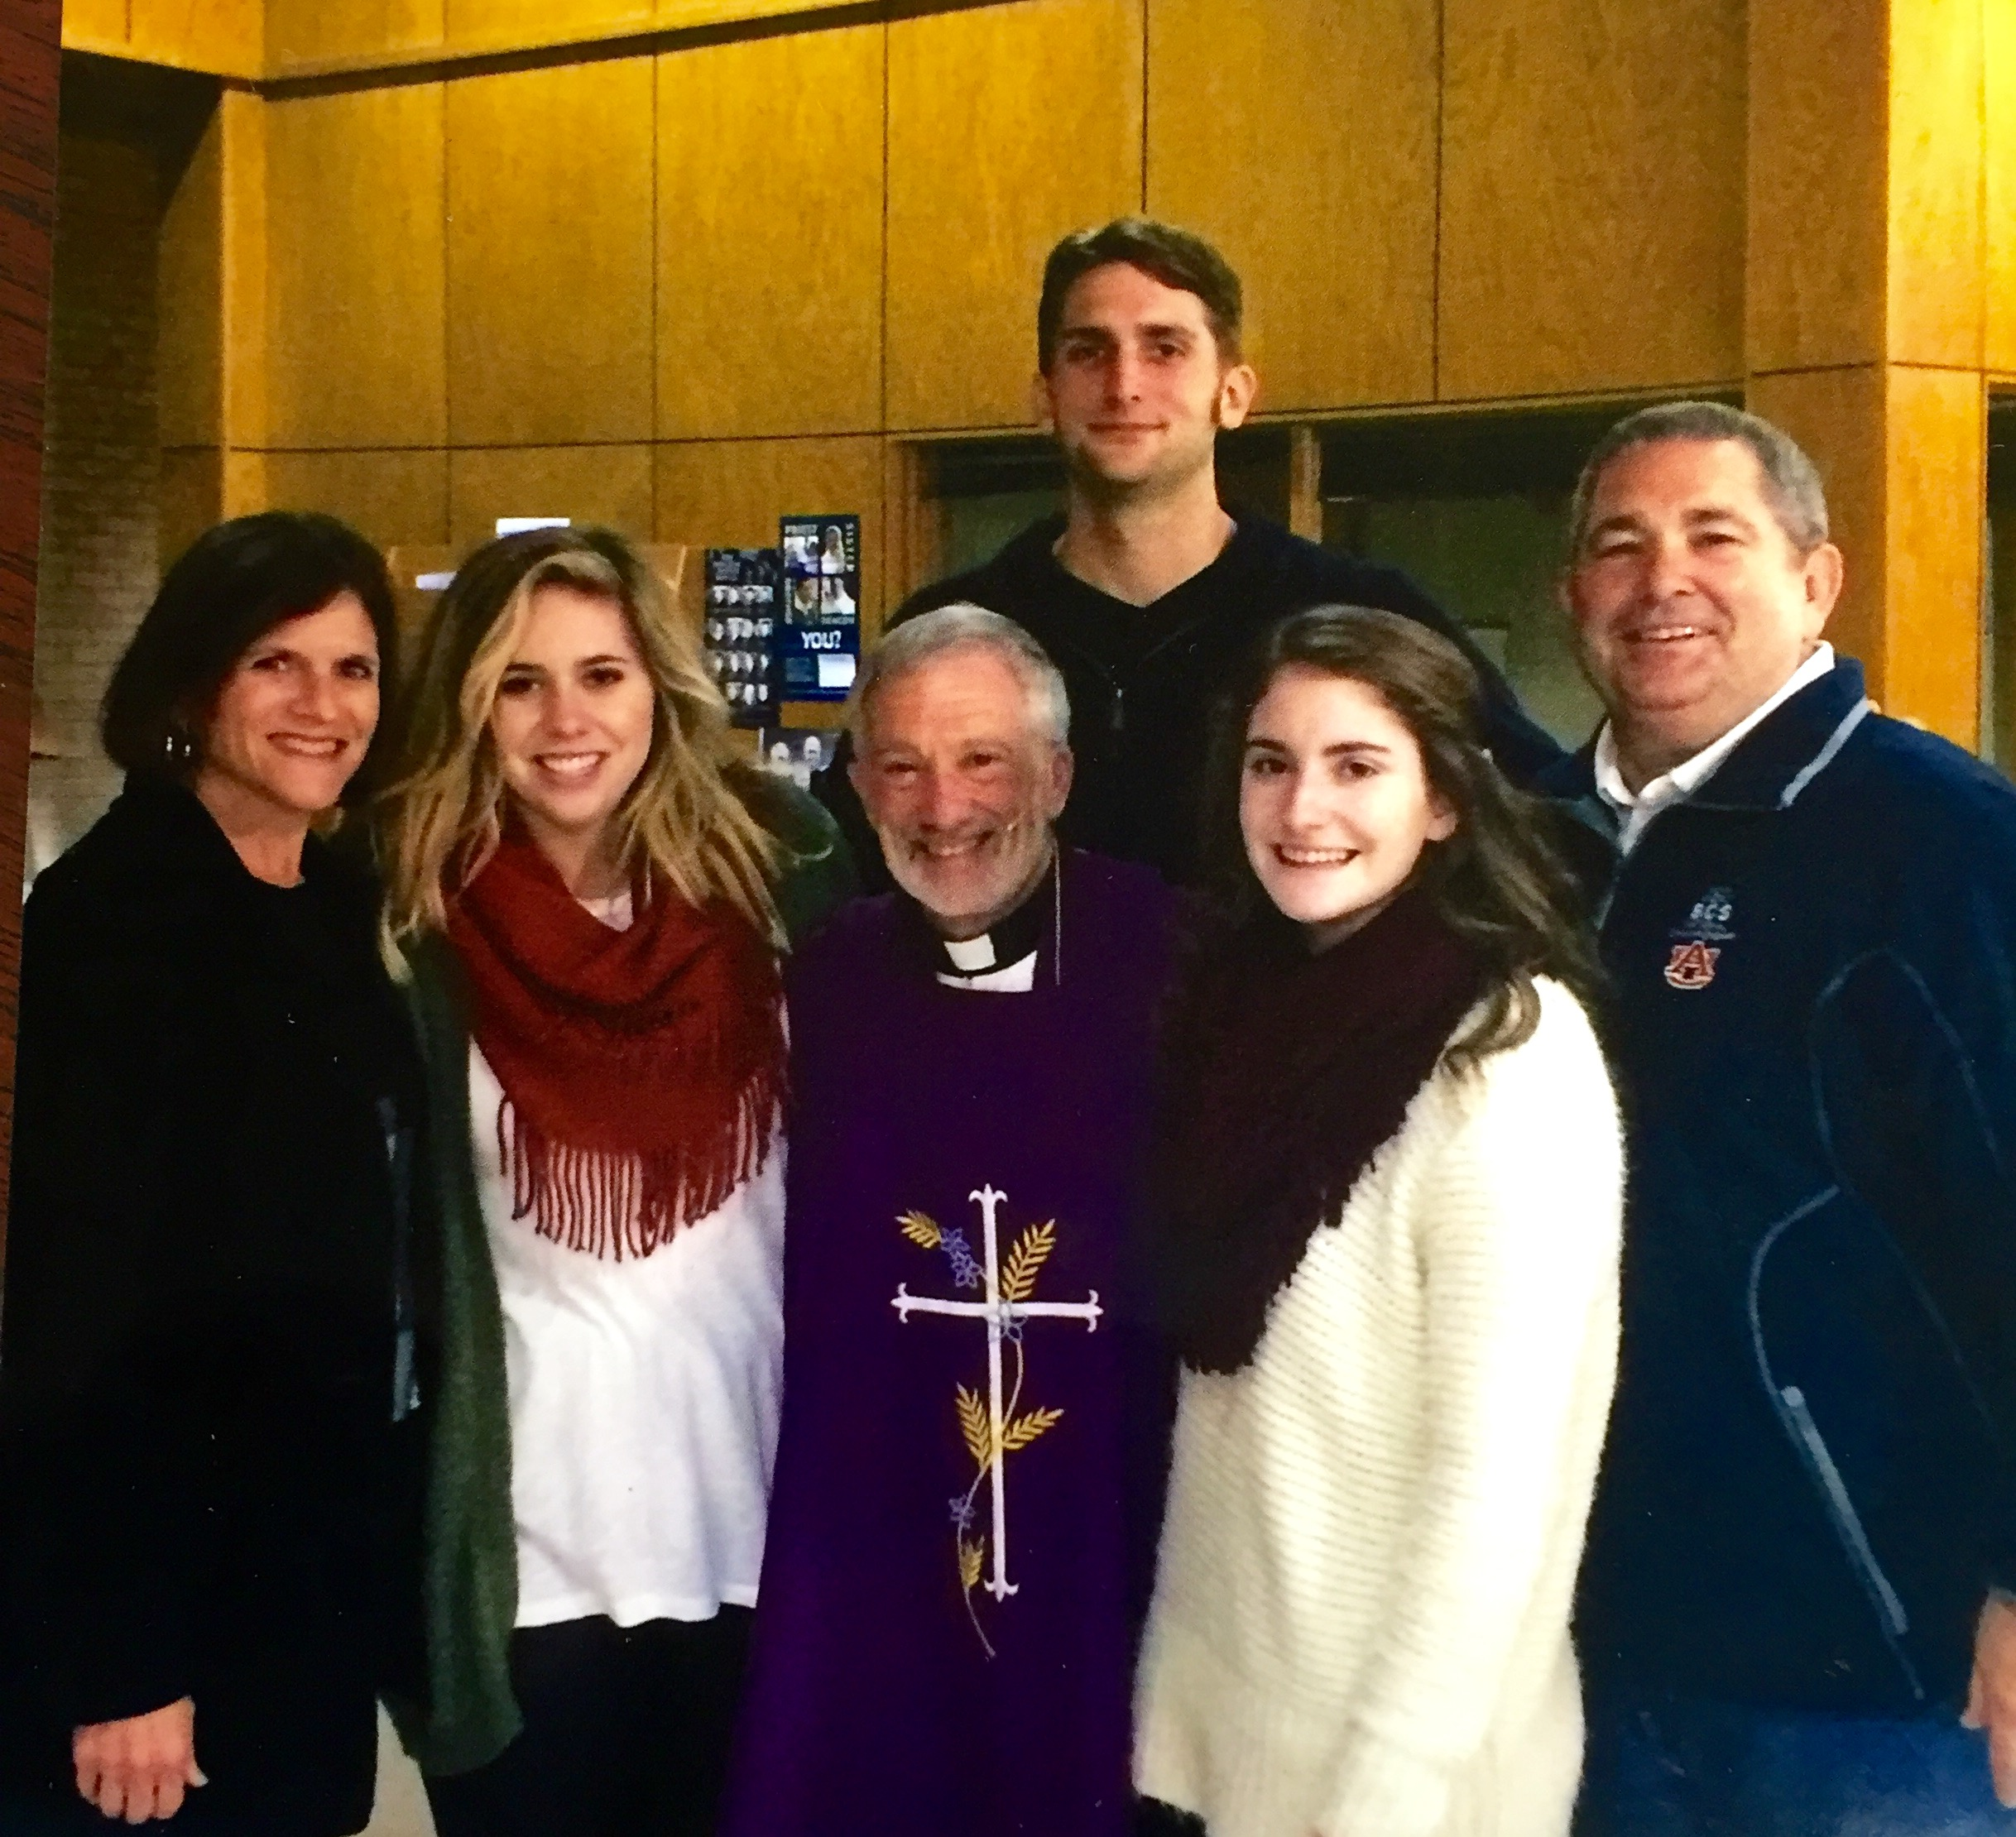 Tex with wife Cindy, children Claire, Noelle and Joshua, and Father Martin.